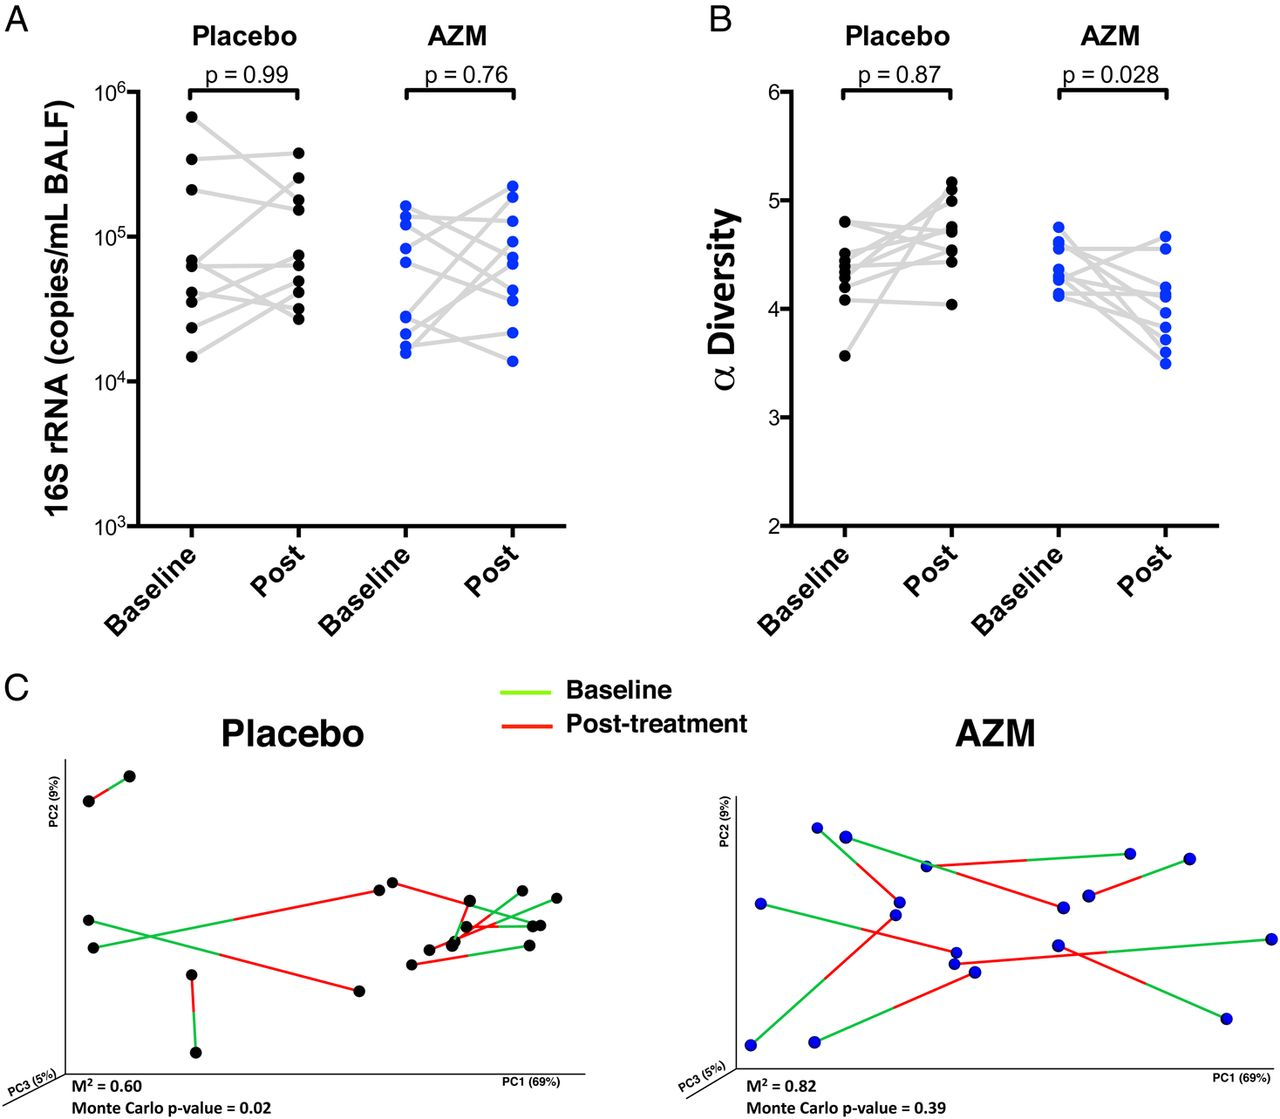 Randomised, double-blind, placebo-controlled trial with